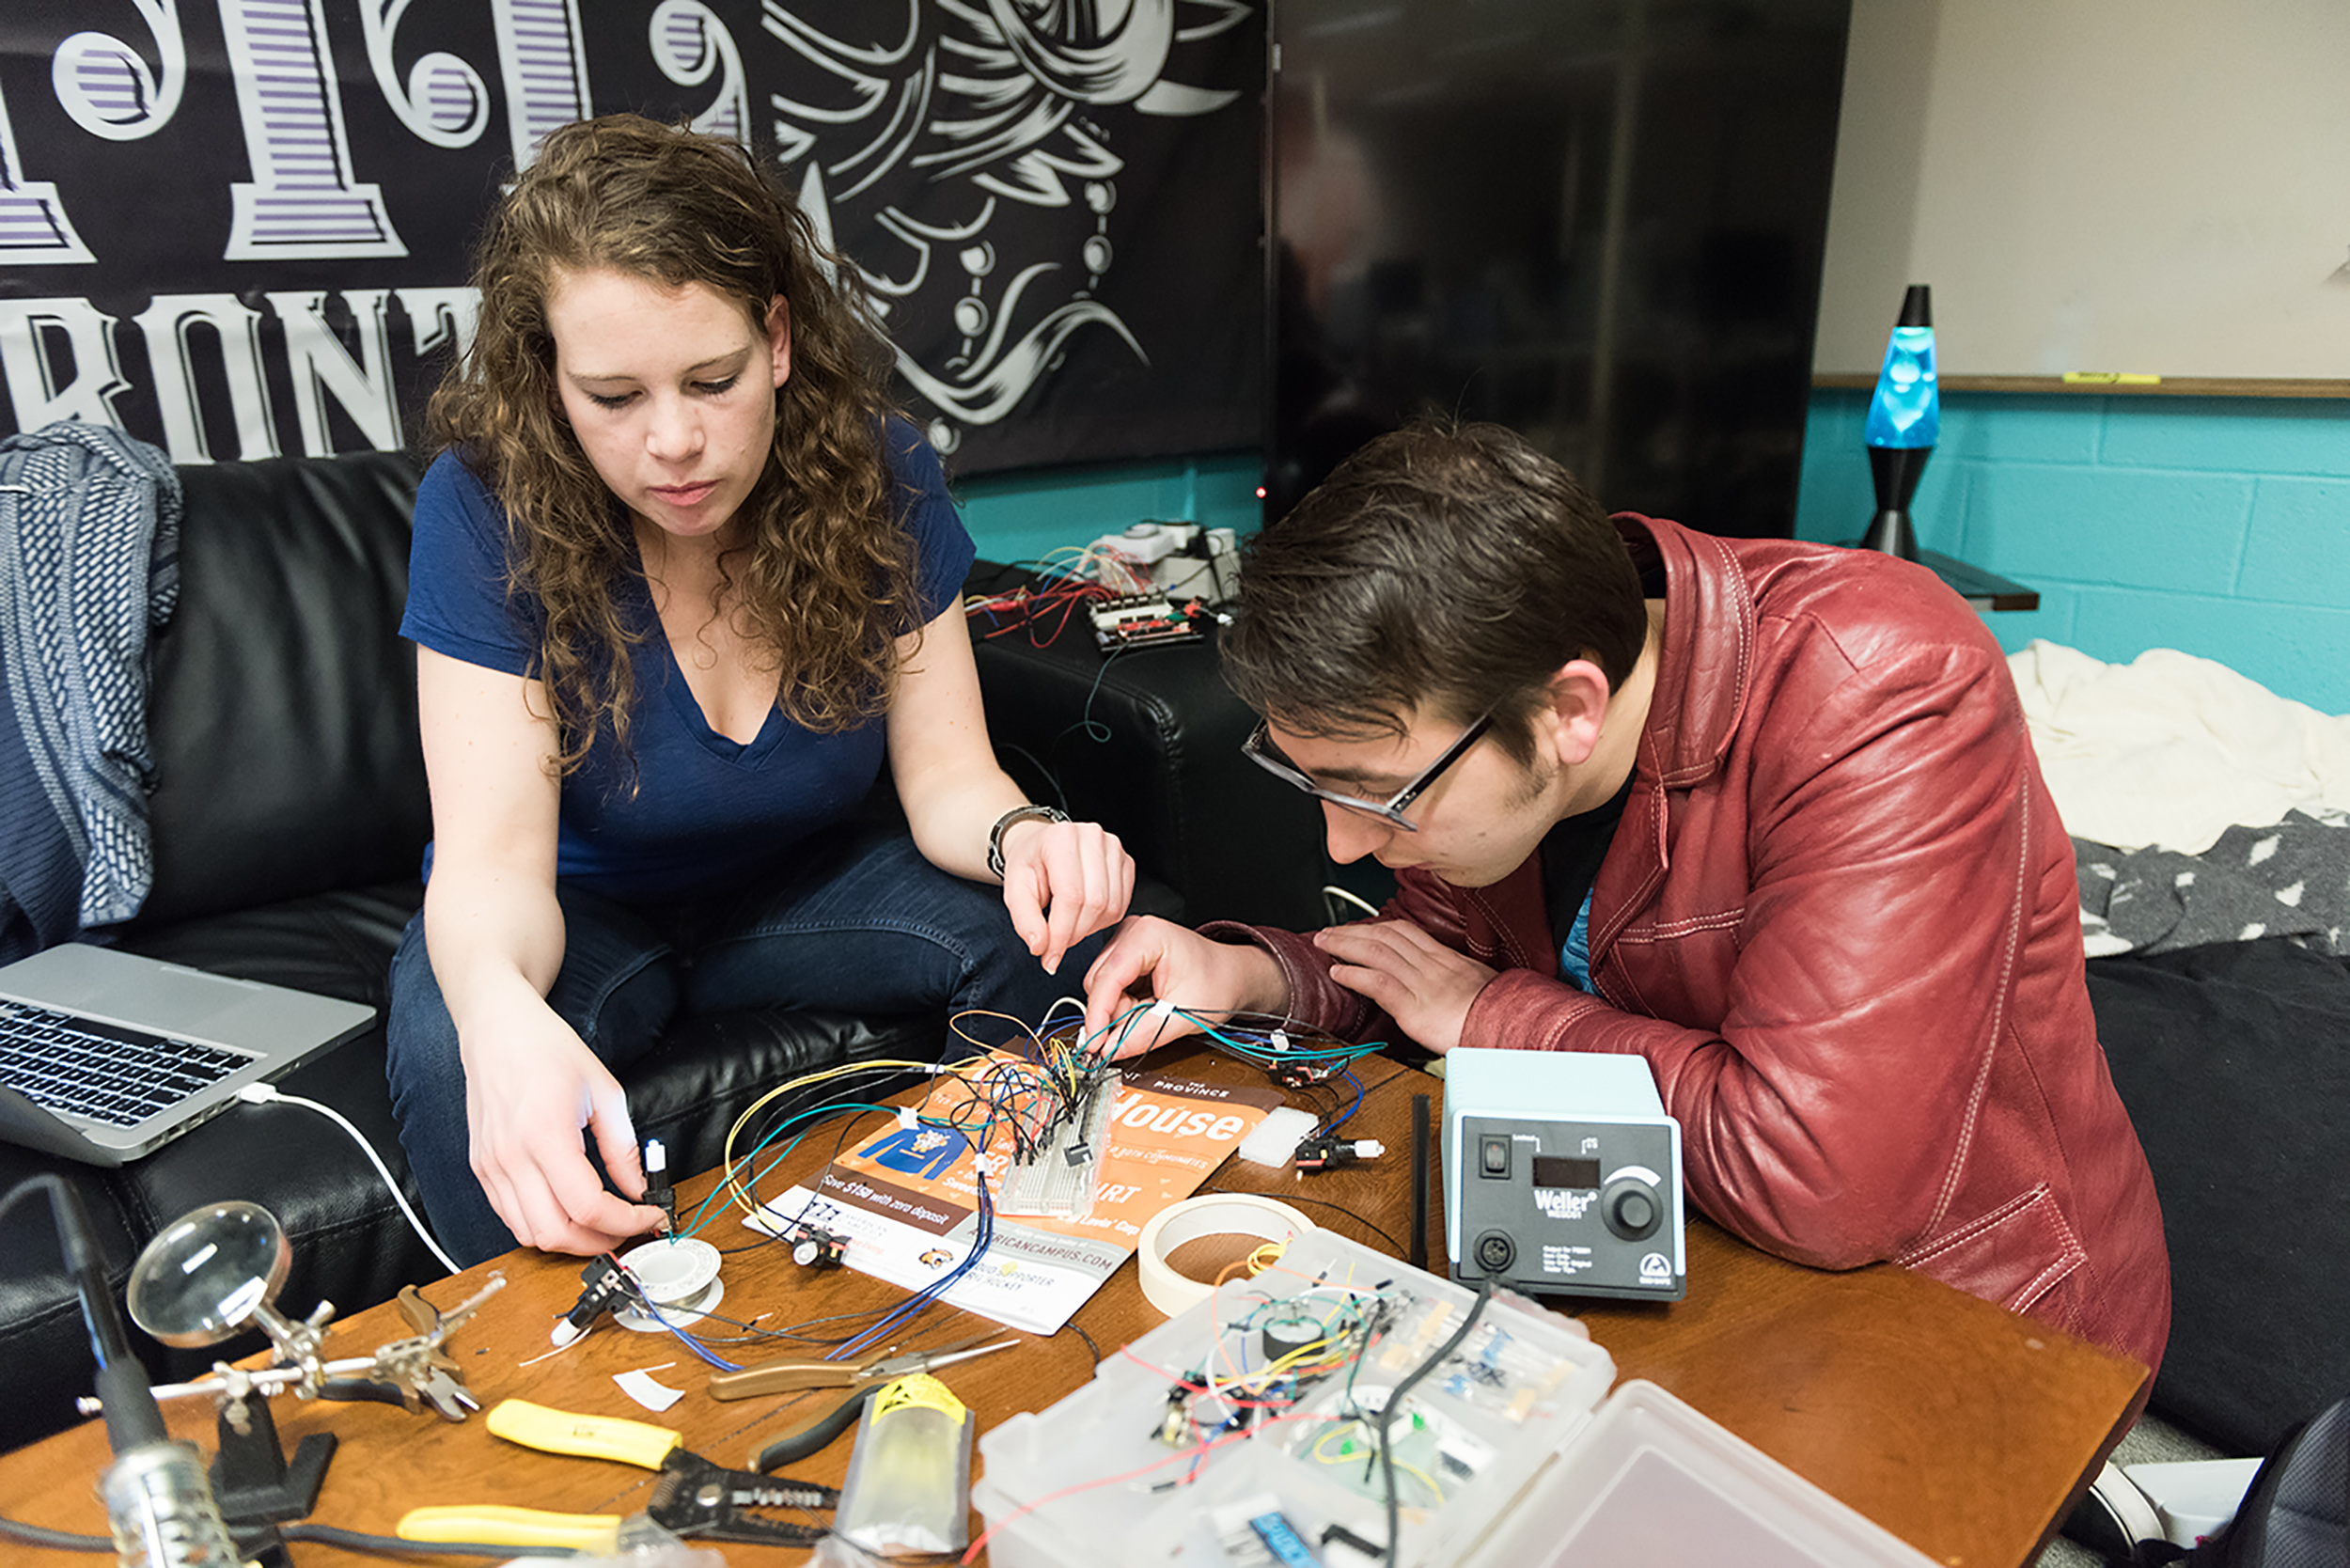 Two students sit at a table with a variety of electronics while soldering some of them